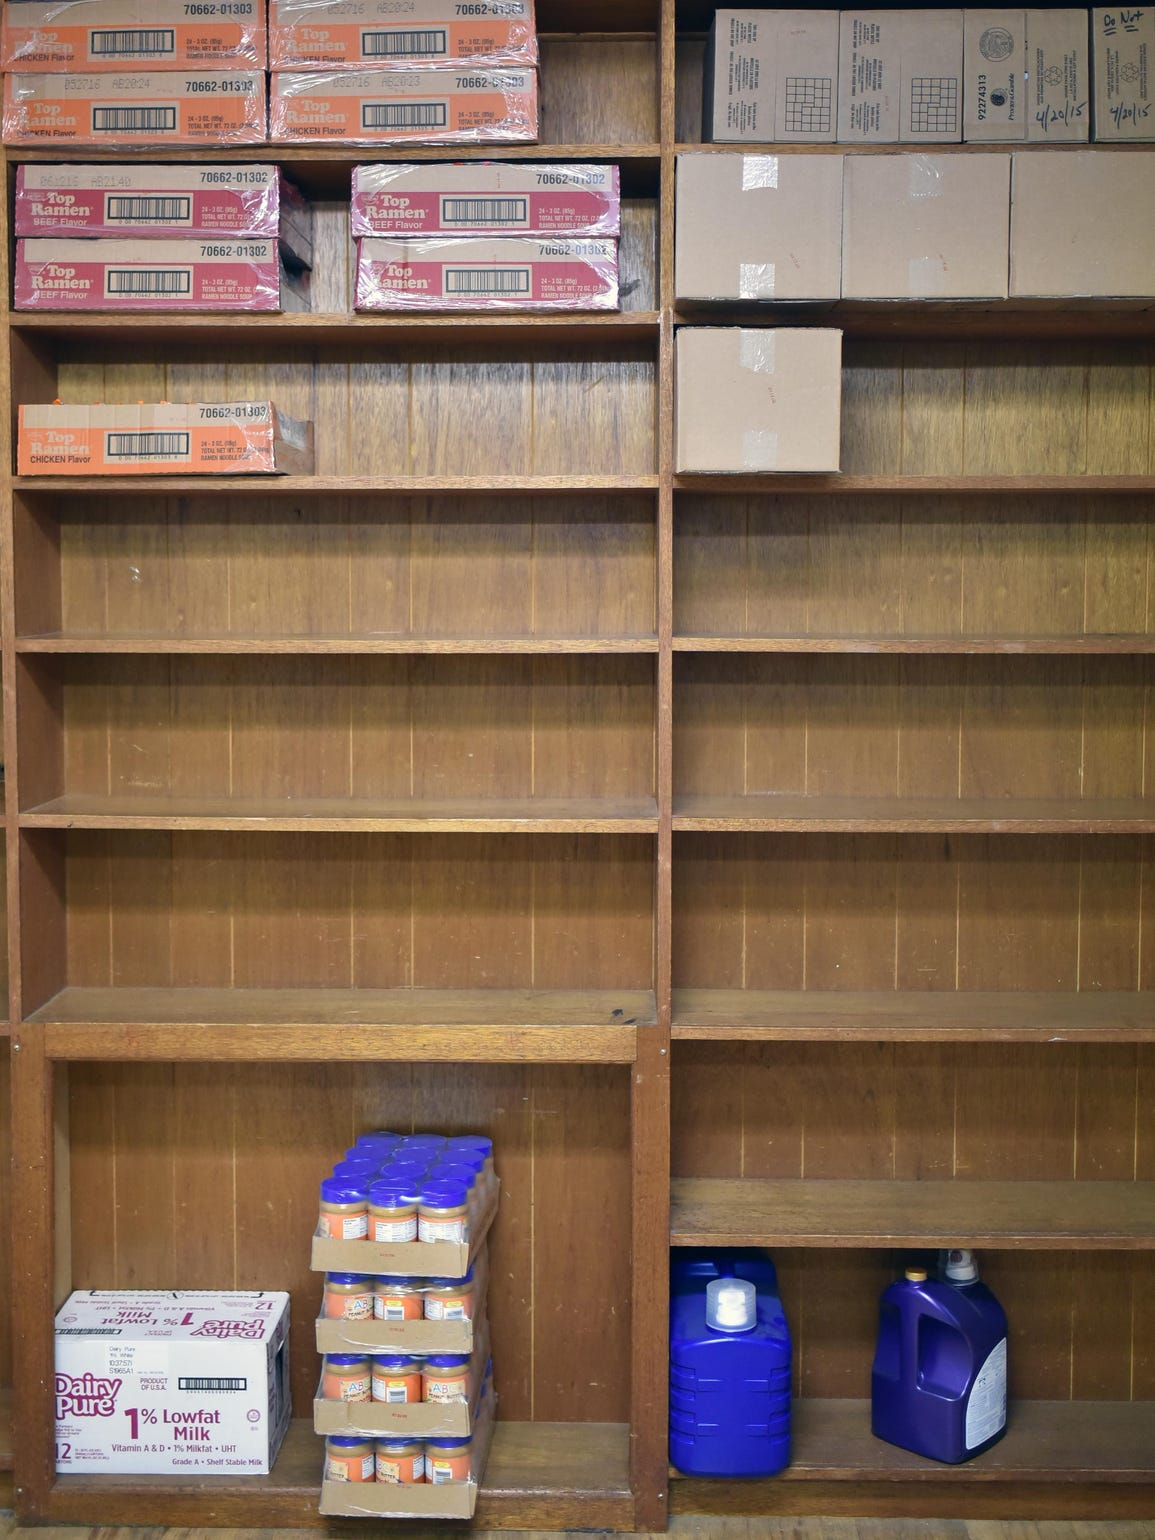 Food is flying off the shelves at the Help & Hope Ministries